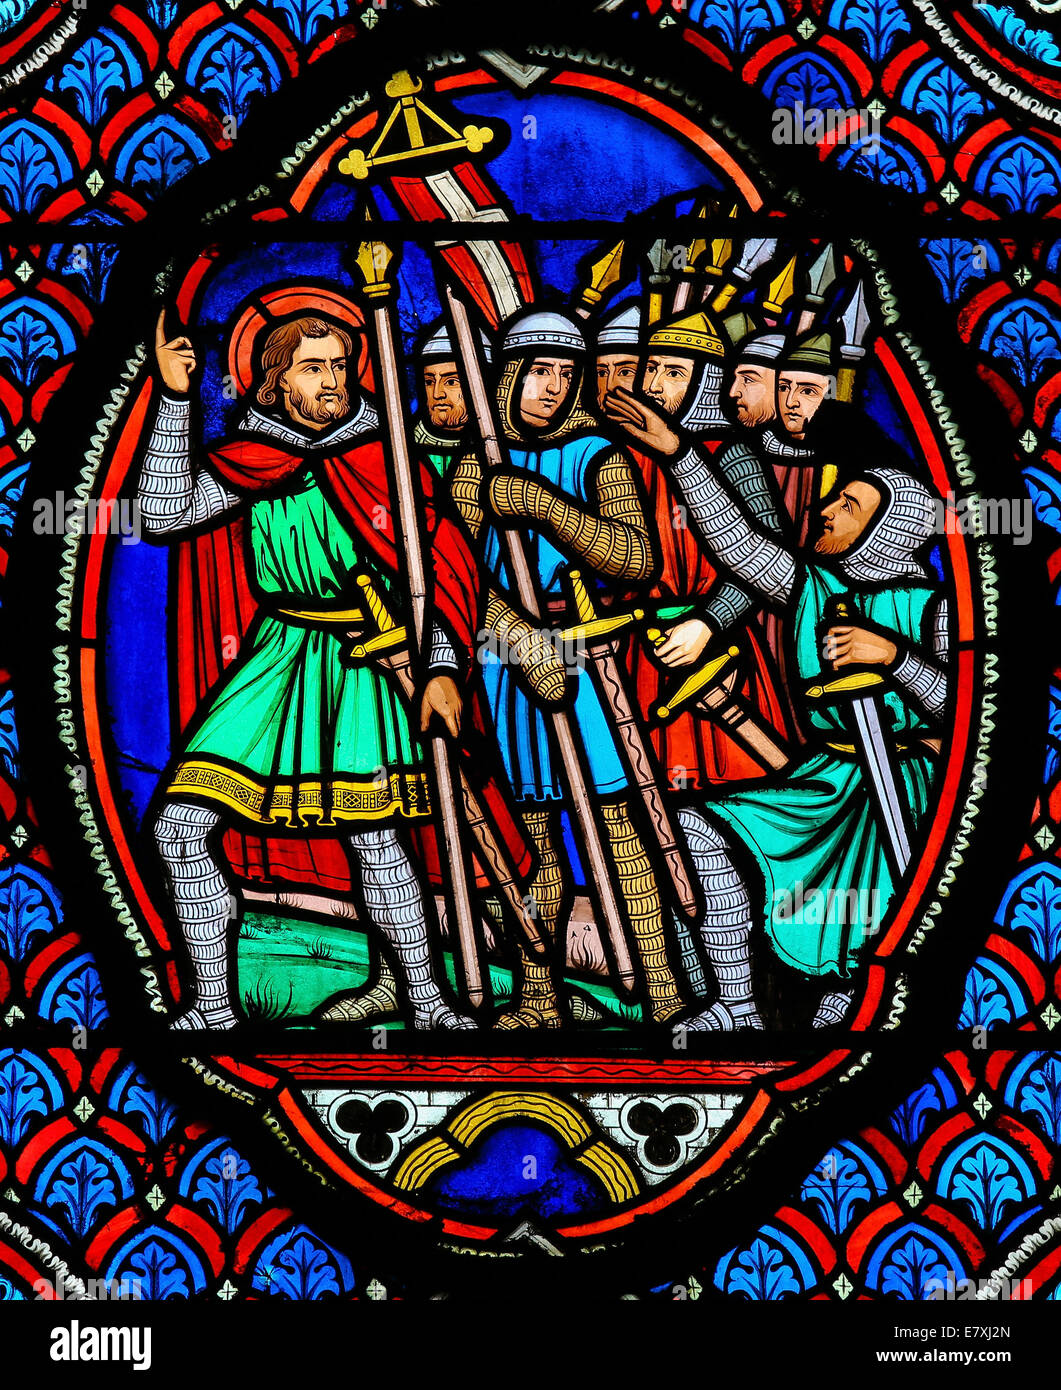 Stained glass window depicting Crusaders in the Cathedral of Tours, France. - Stock Image